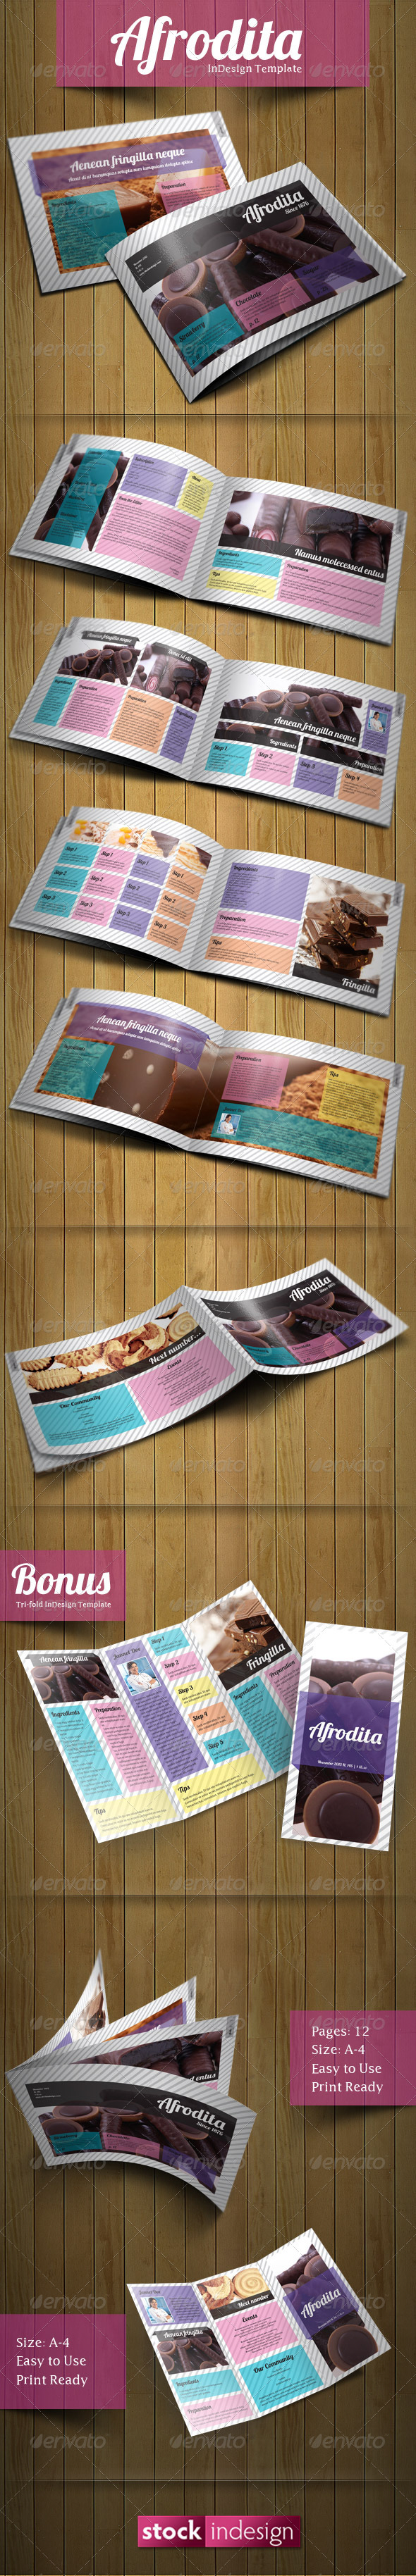 Afrodita Brochure: Modern & Clean - Corporate Brochures